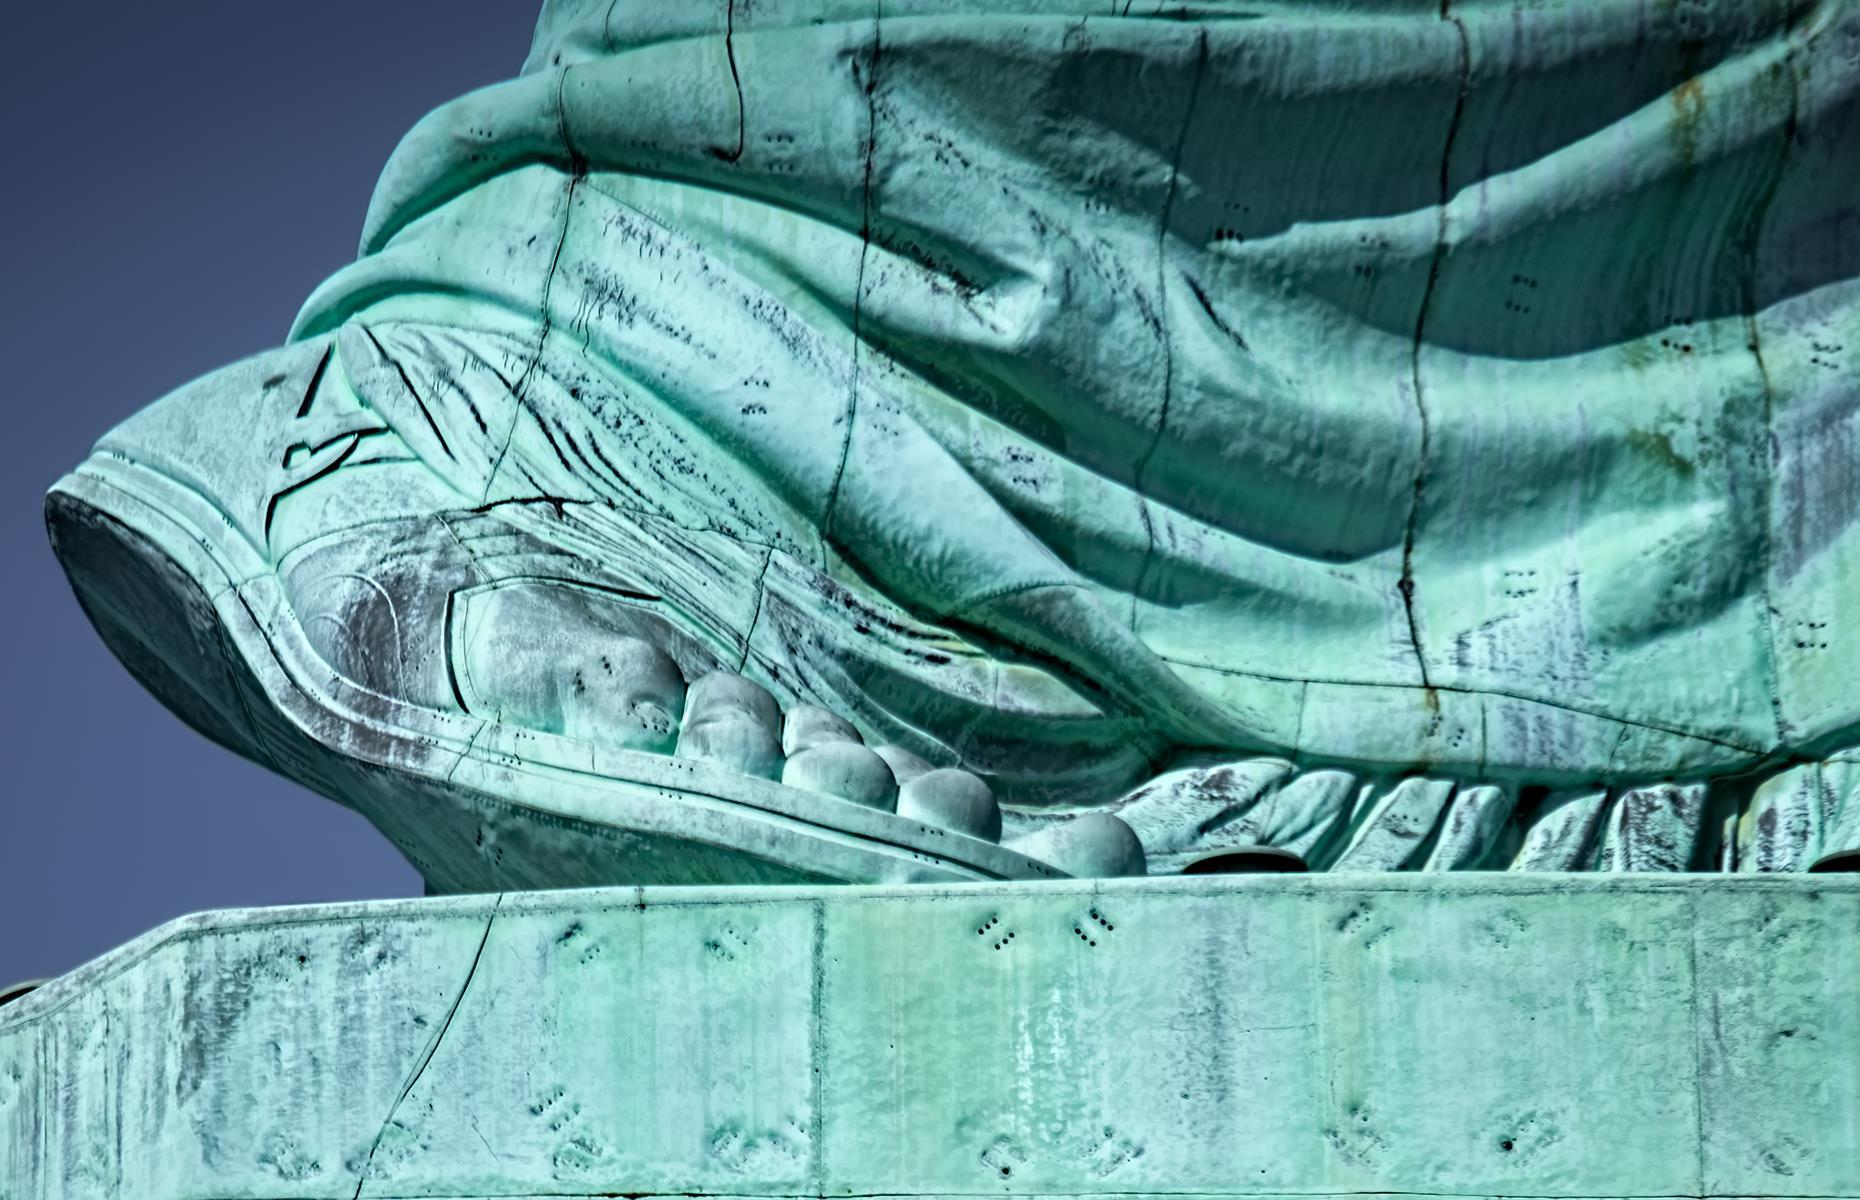 Slide 44 of 53: These are the toes of Libertas, the Roman goddess of liberty, who used to welcome immigrants arriving on ships to one of the biggest cities in the world.